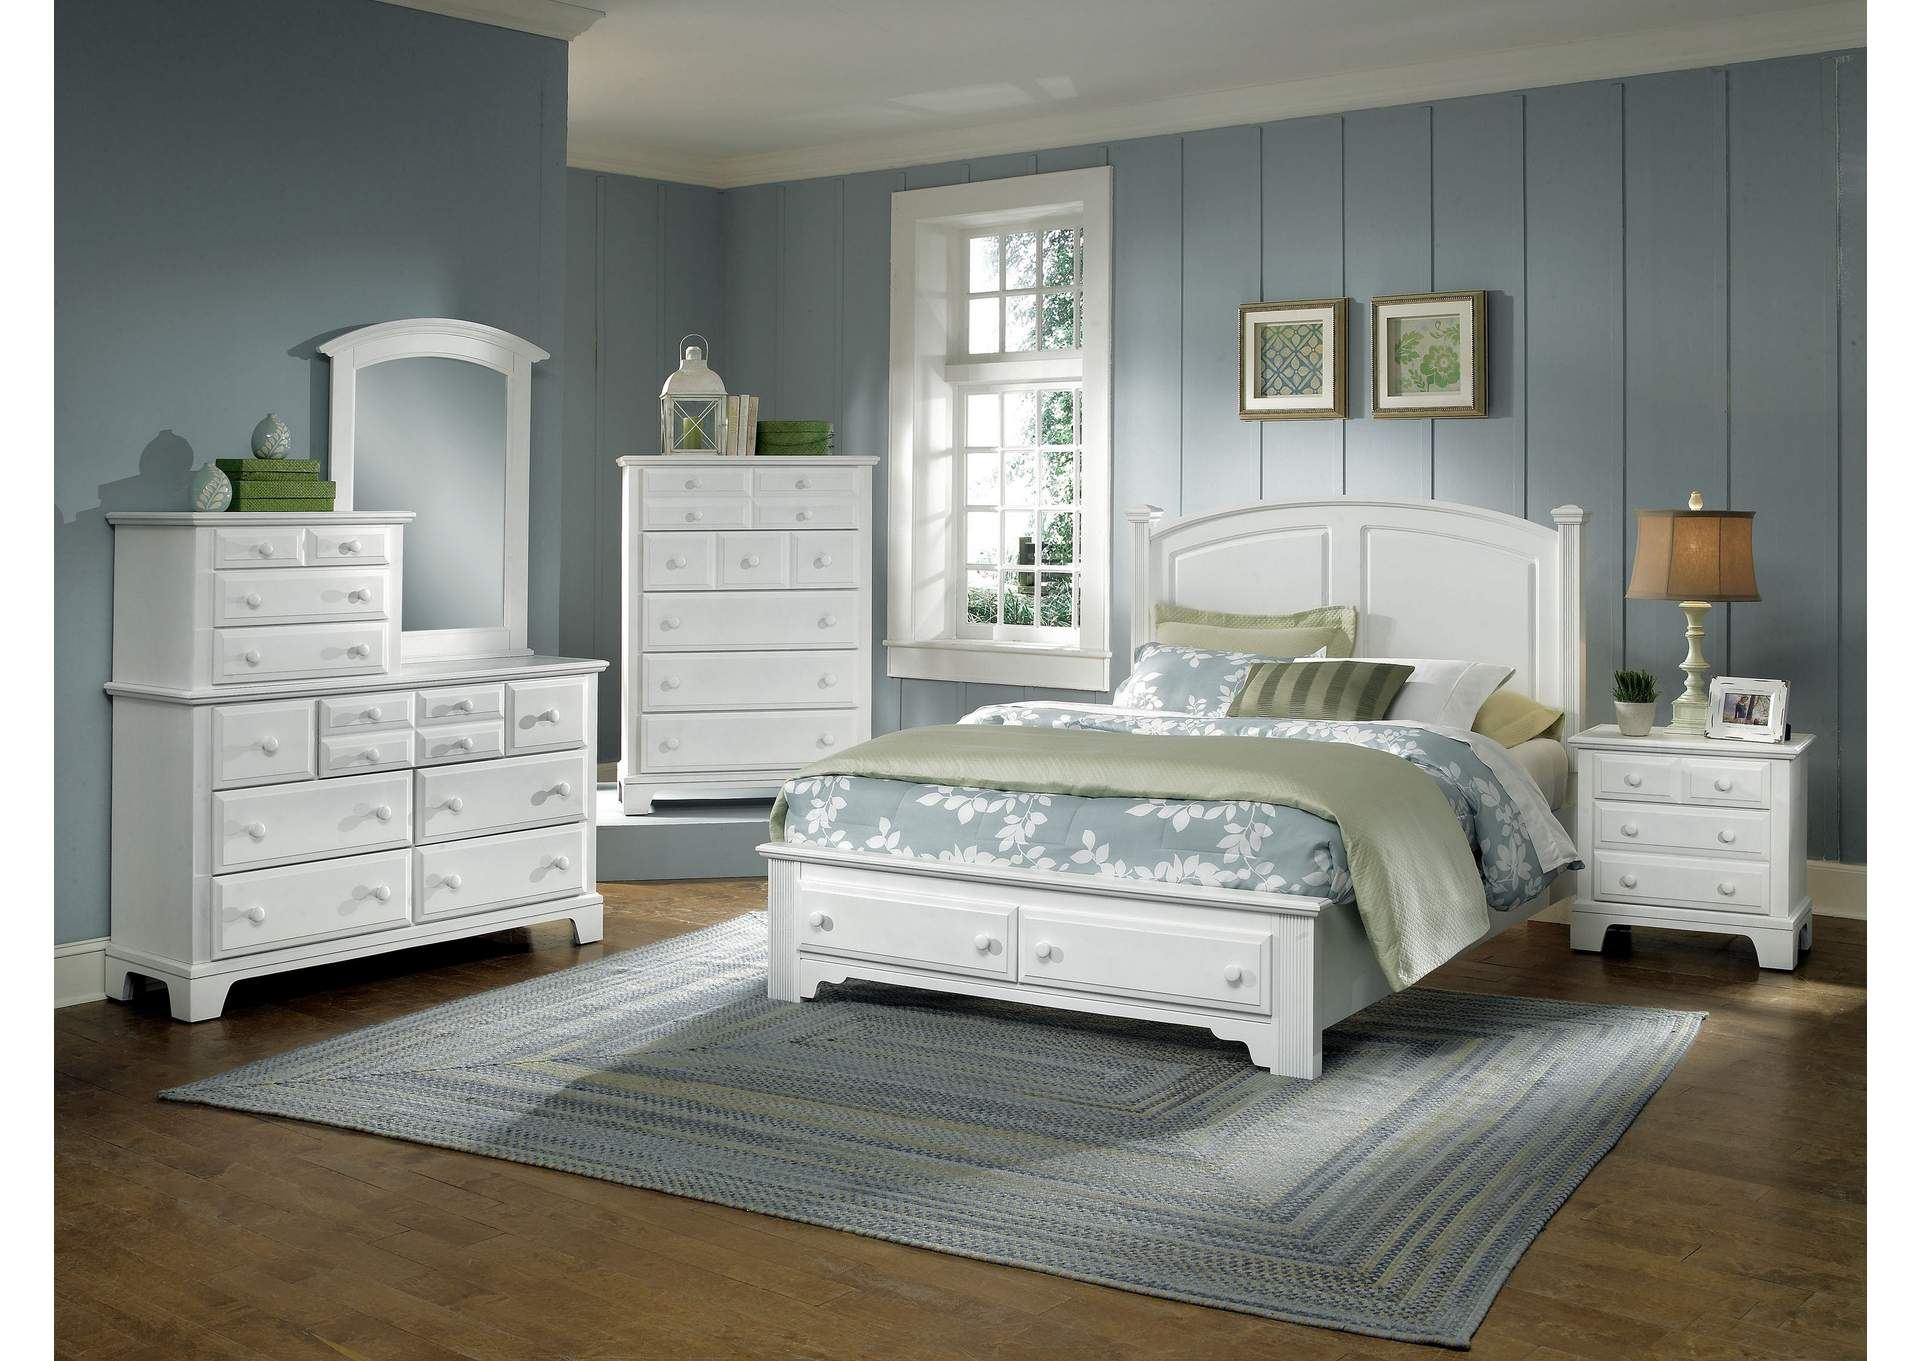 BB6 - Barnburner 6 Snow White Chest - 5 Drawer,Vaughan-Bassett